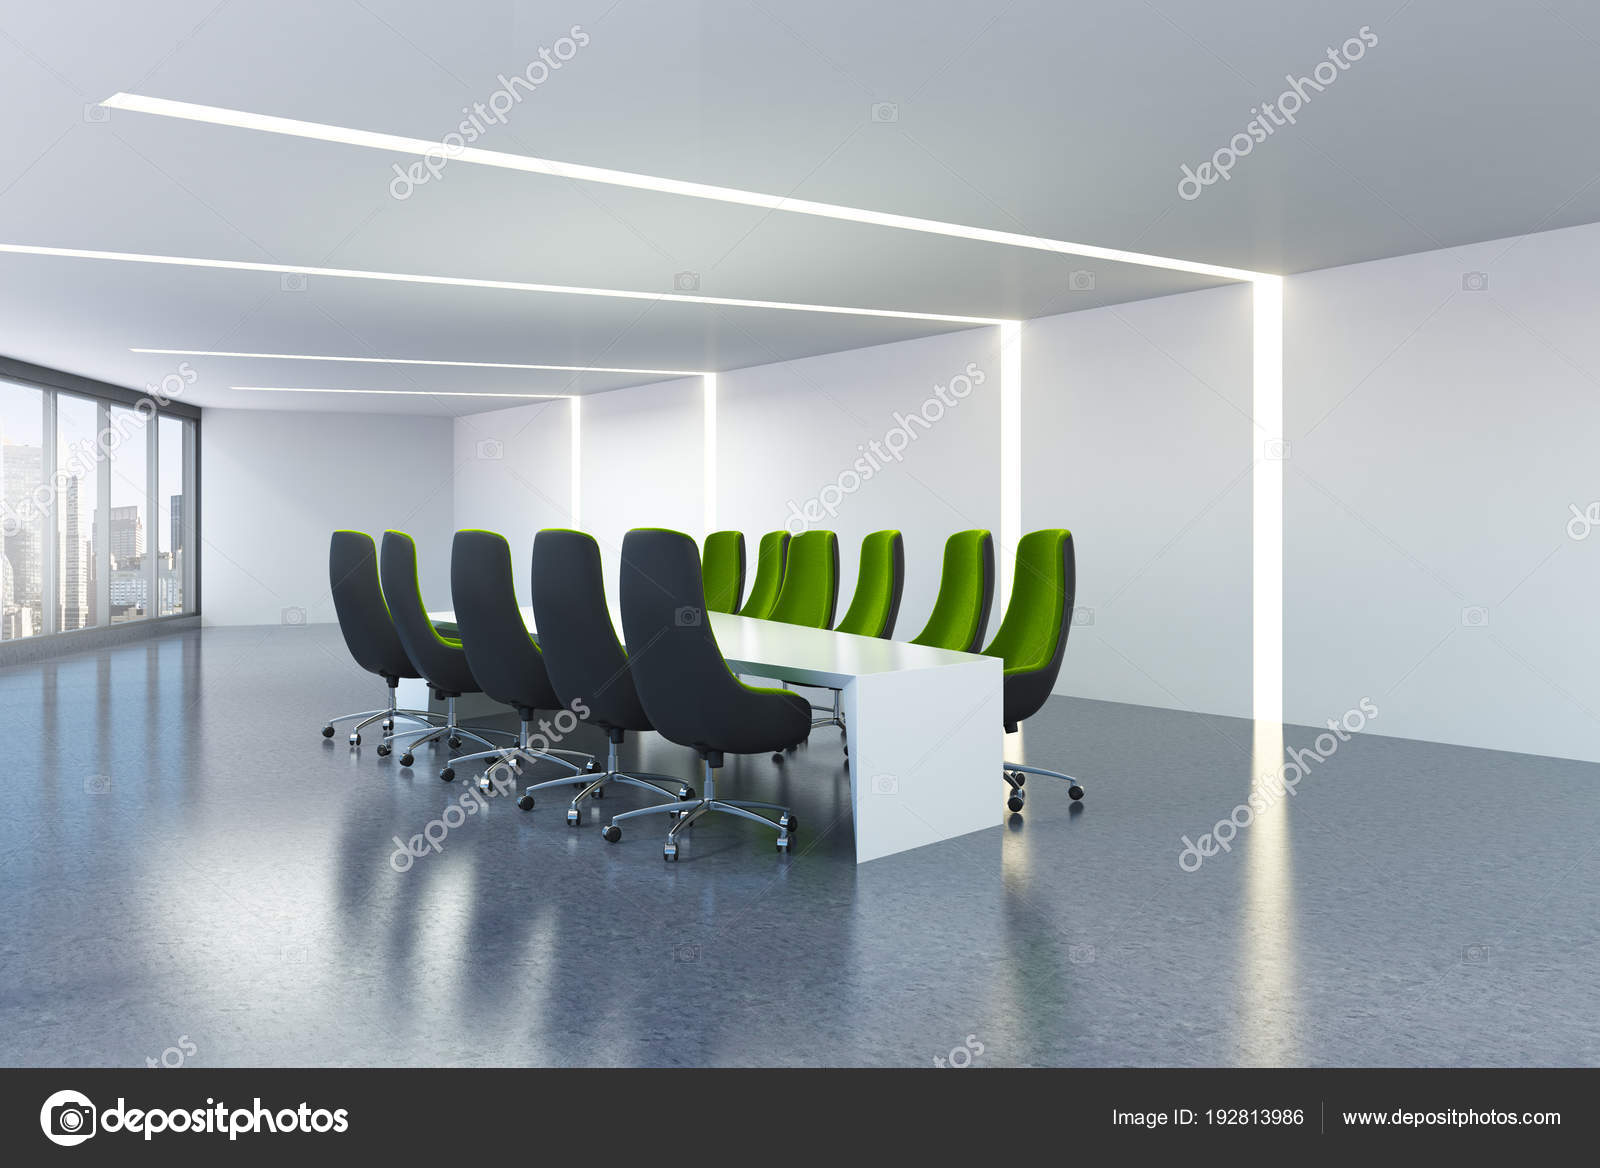 White Meeting Room Green Office Chairs Stock Photo